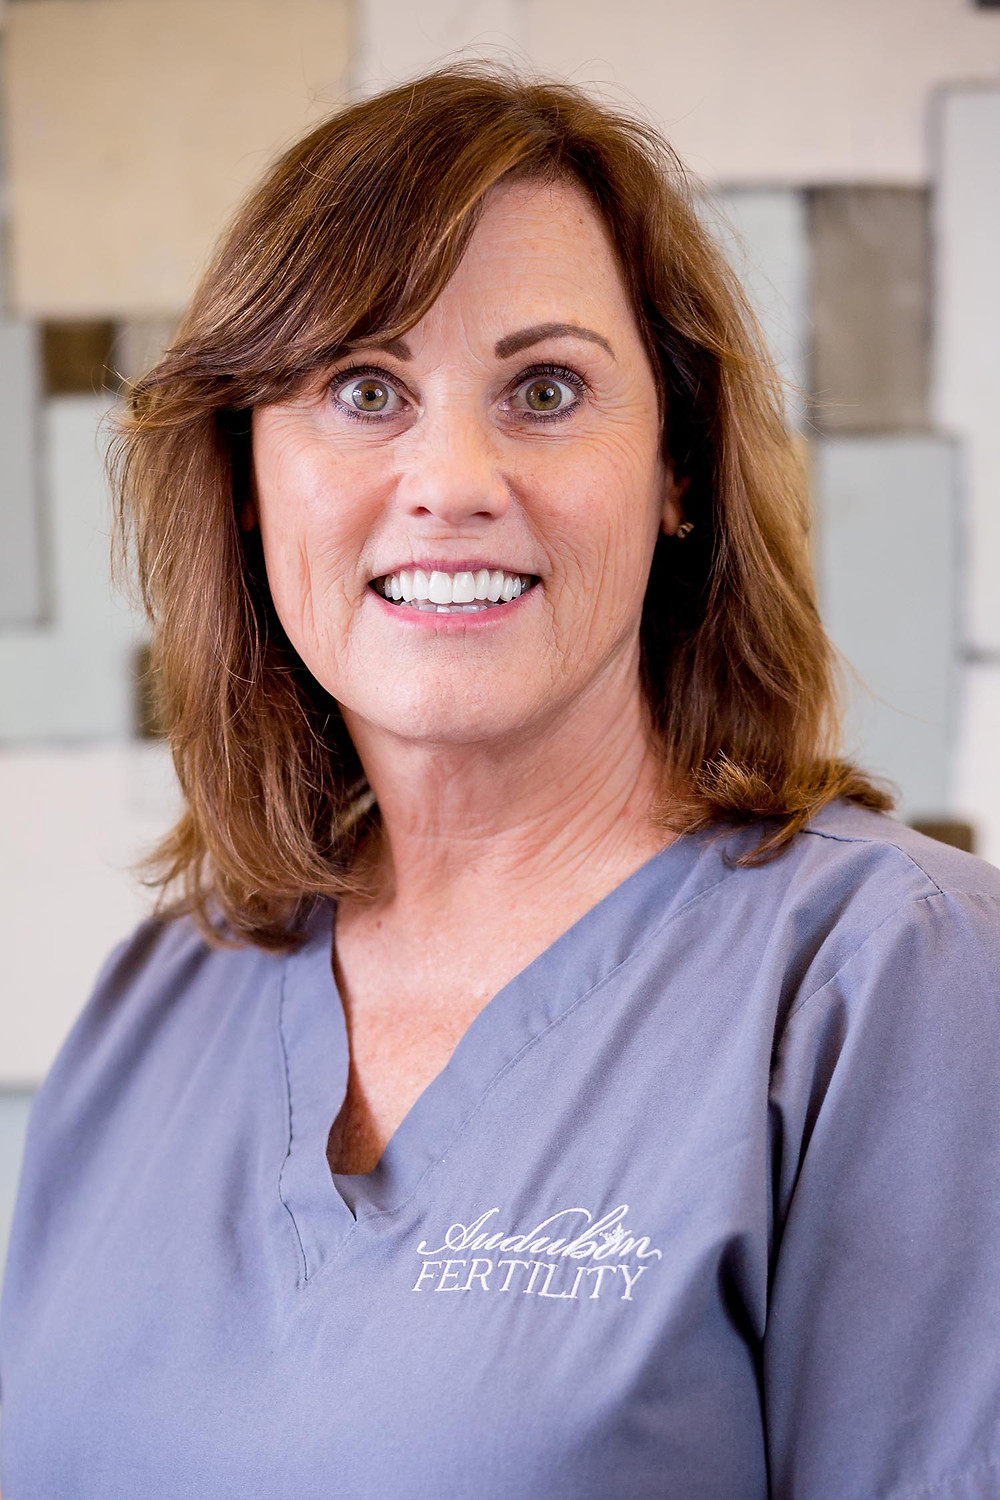 debbie regan, audubon fertility, donor egg new orleans, egg donor new orleans